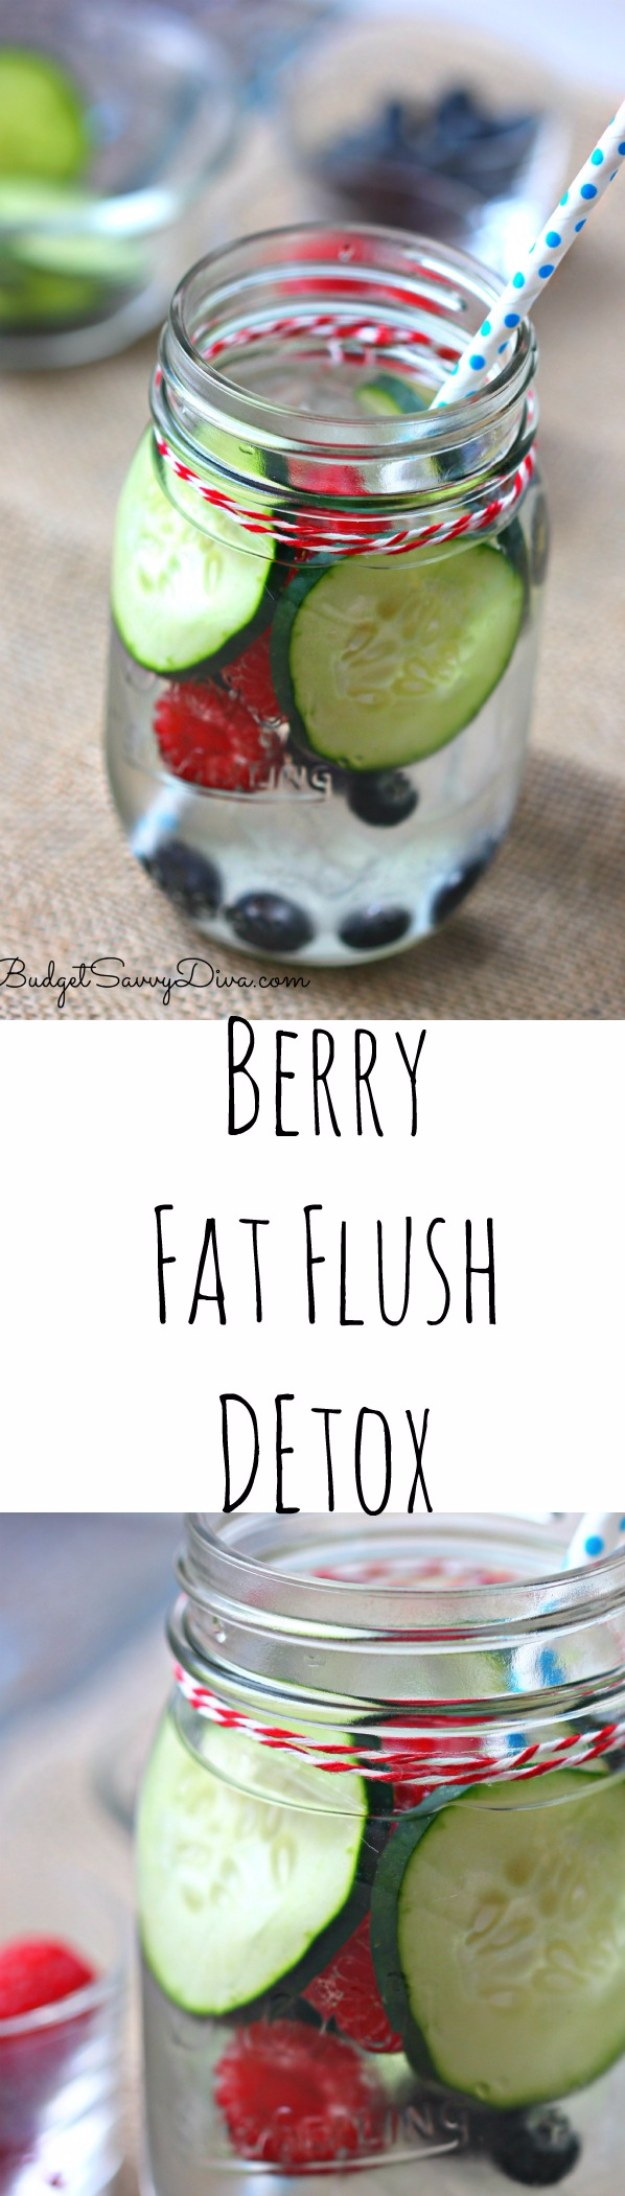 DIY Detox Recipes, Ideas and Tips - Berry Fat Flush Detox Recipe - How to Detox Your Body, Brain and Skin for Health and Weight Loss. Detox Drinks, Waters, Teas, Wraps, Soup, Masks and Skincare Products You Can Make At Home